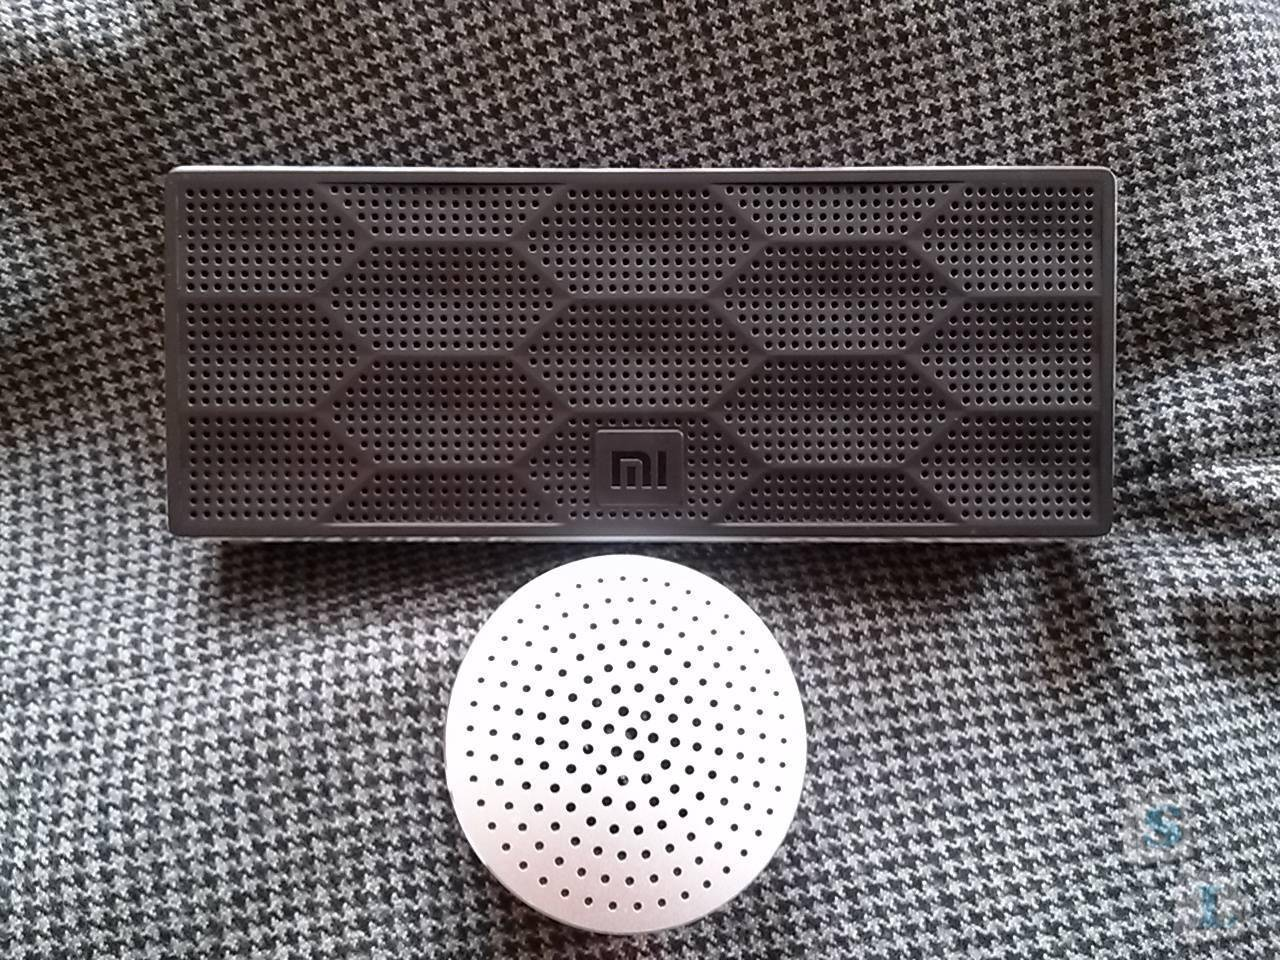 GearBest: Xiaomi Wireless Speaker, прямое попадание